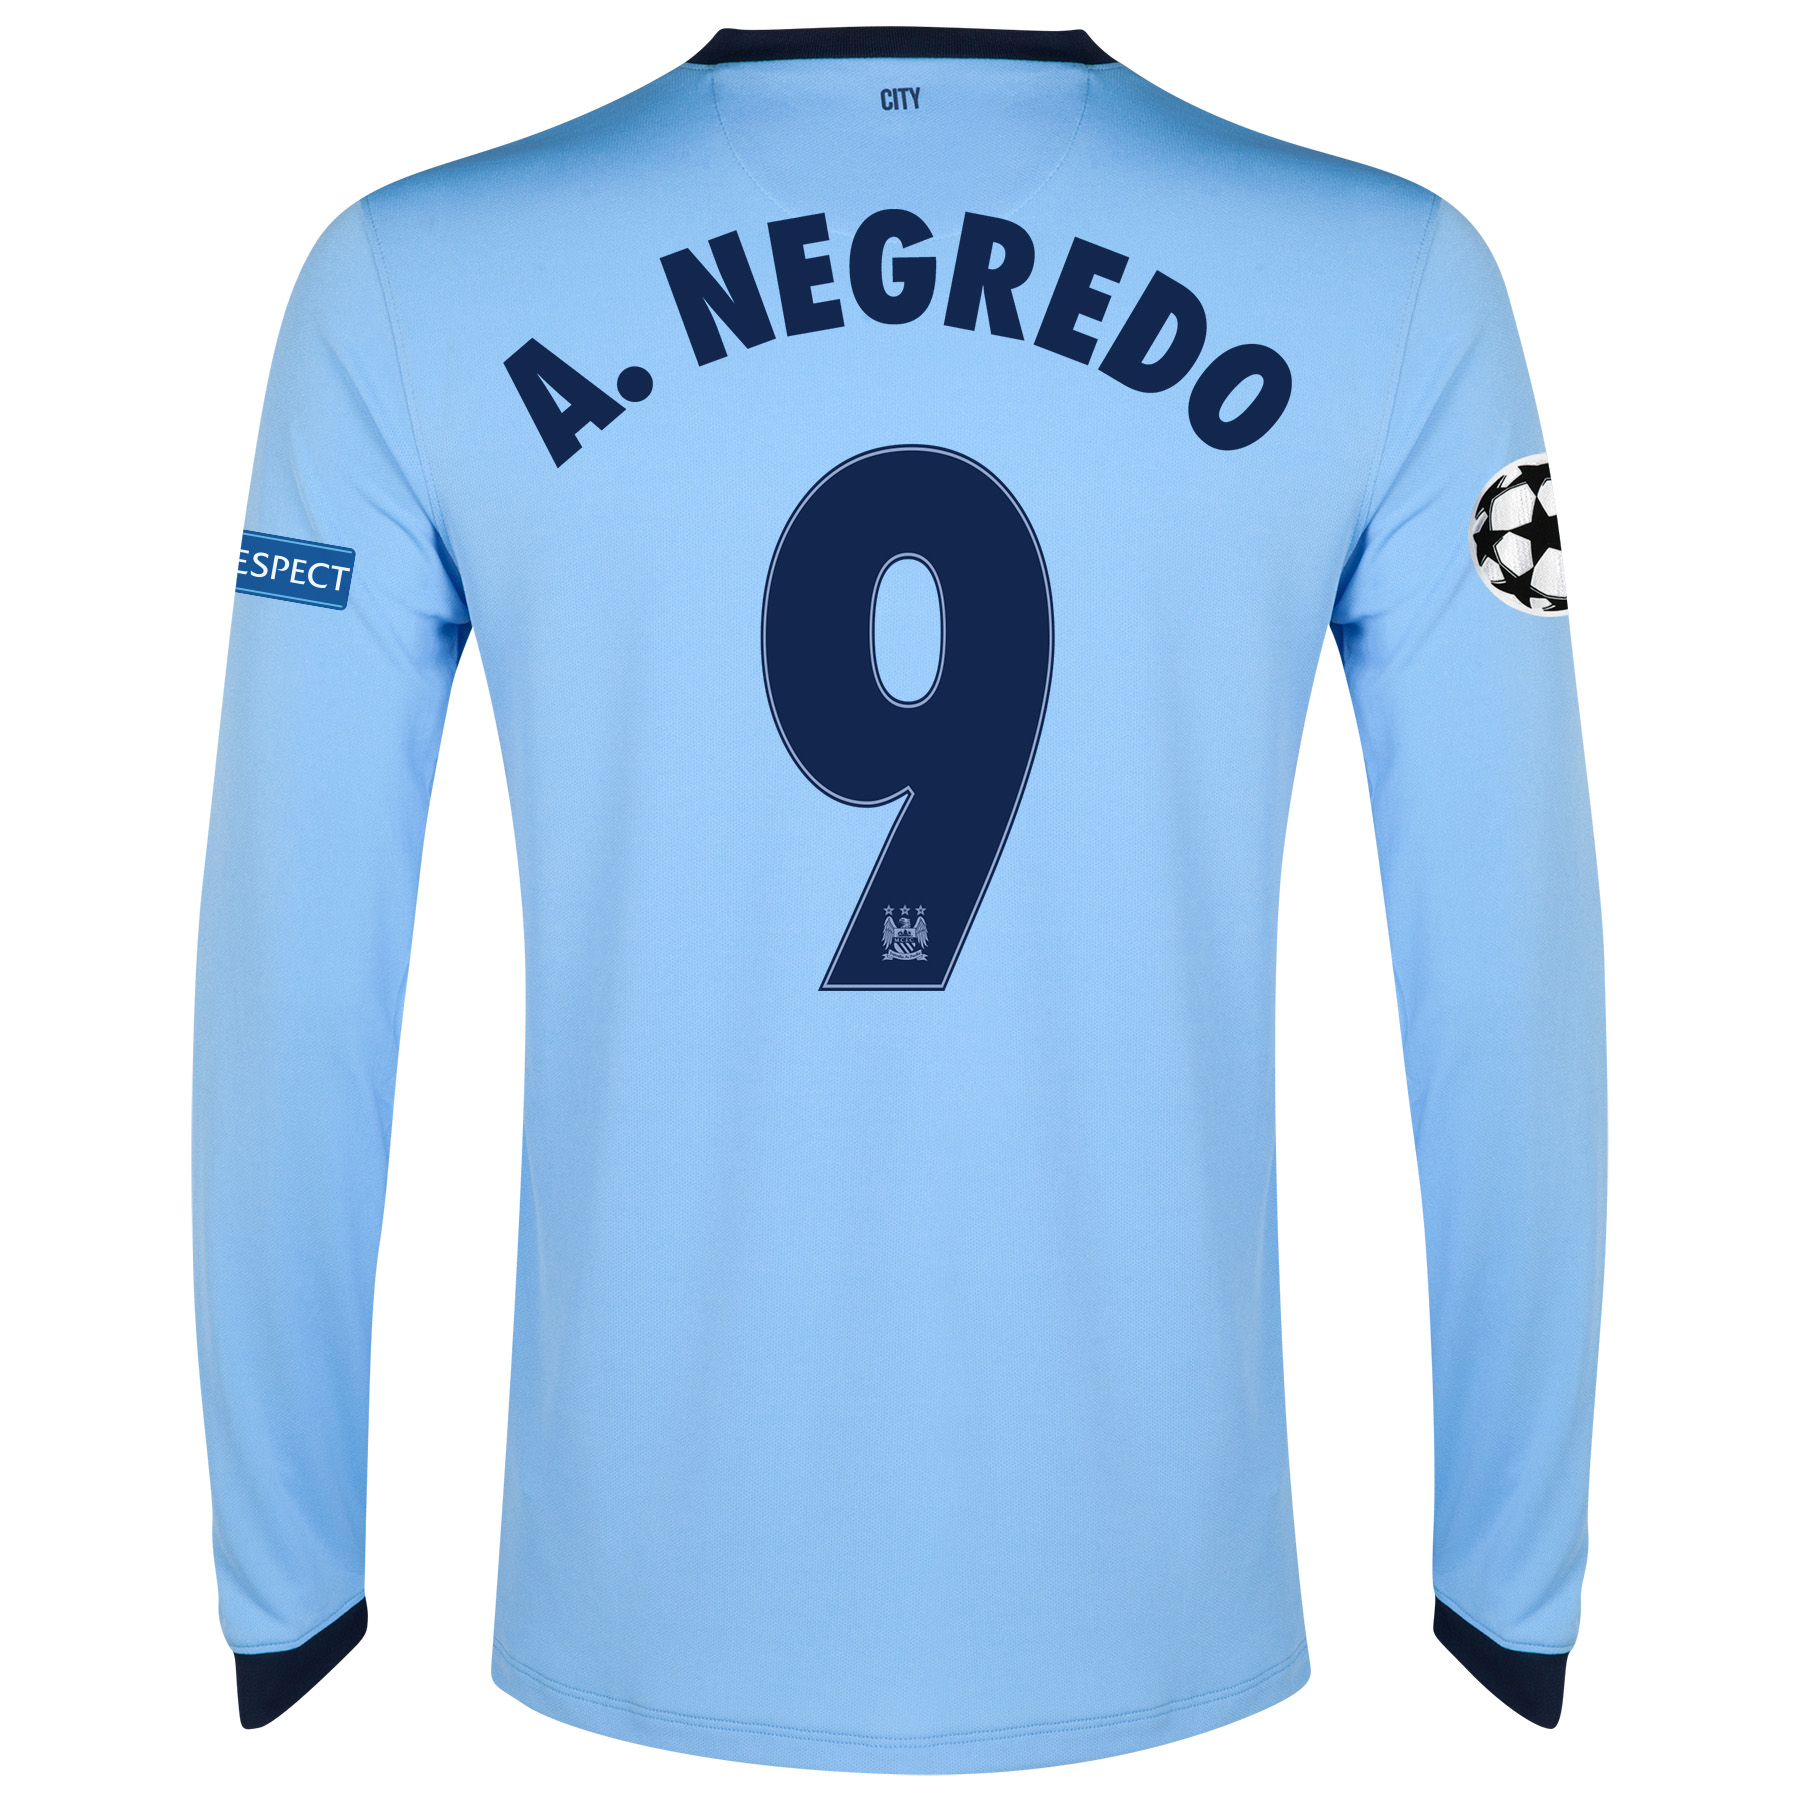 Manchester City UEFA Champions League Home Shirt 2014/15 - Long Sleeve Sky Blue with A.Negredo 9 printing